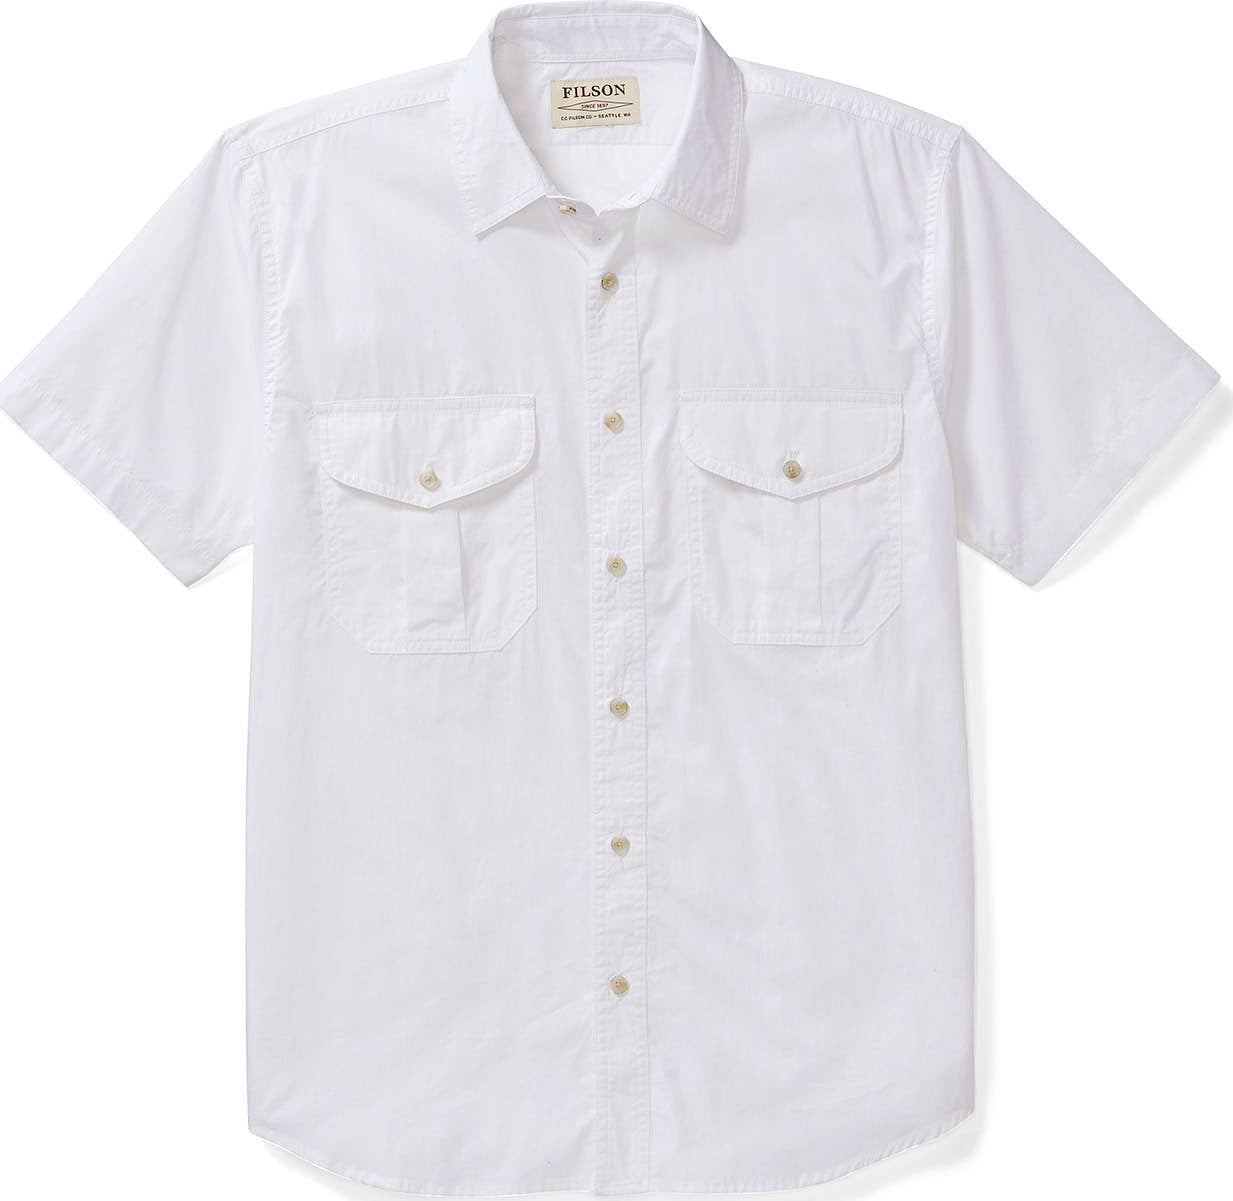 4e4c91bb1d746 Filson Short Sleeve Feather Cloth Shirt - Men s